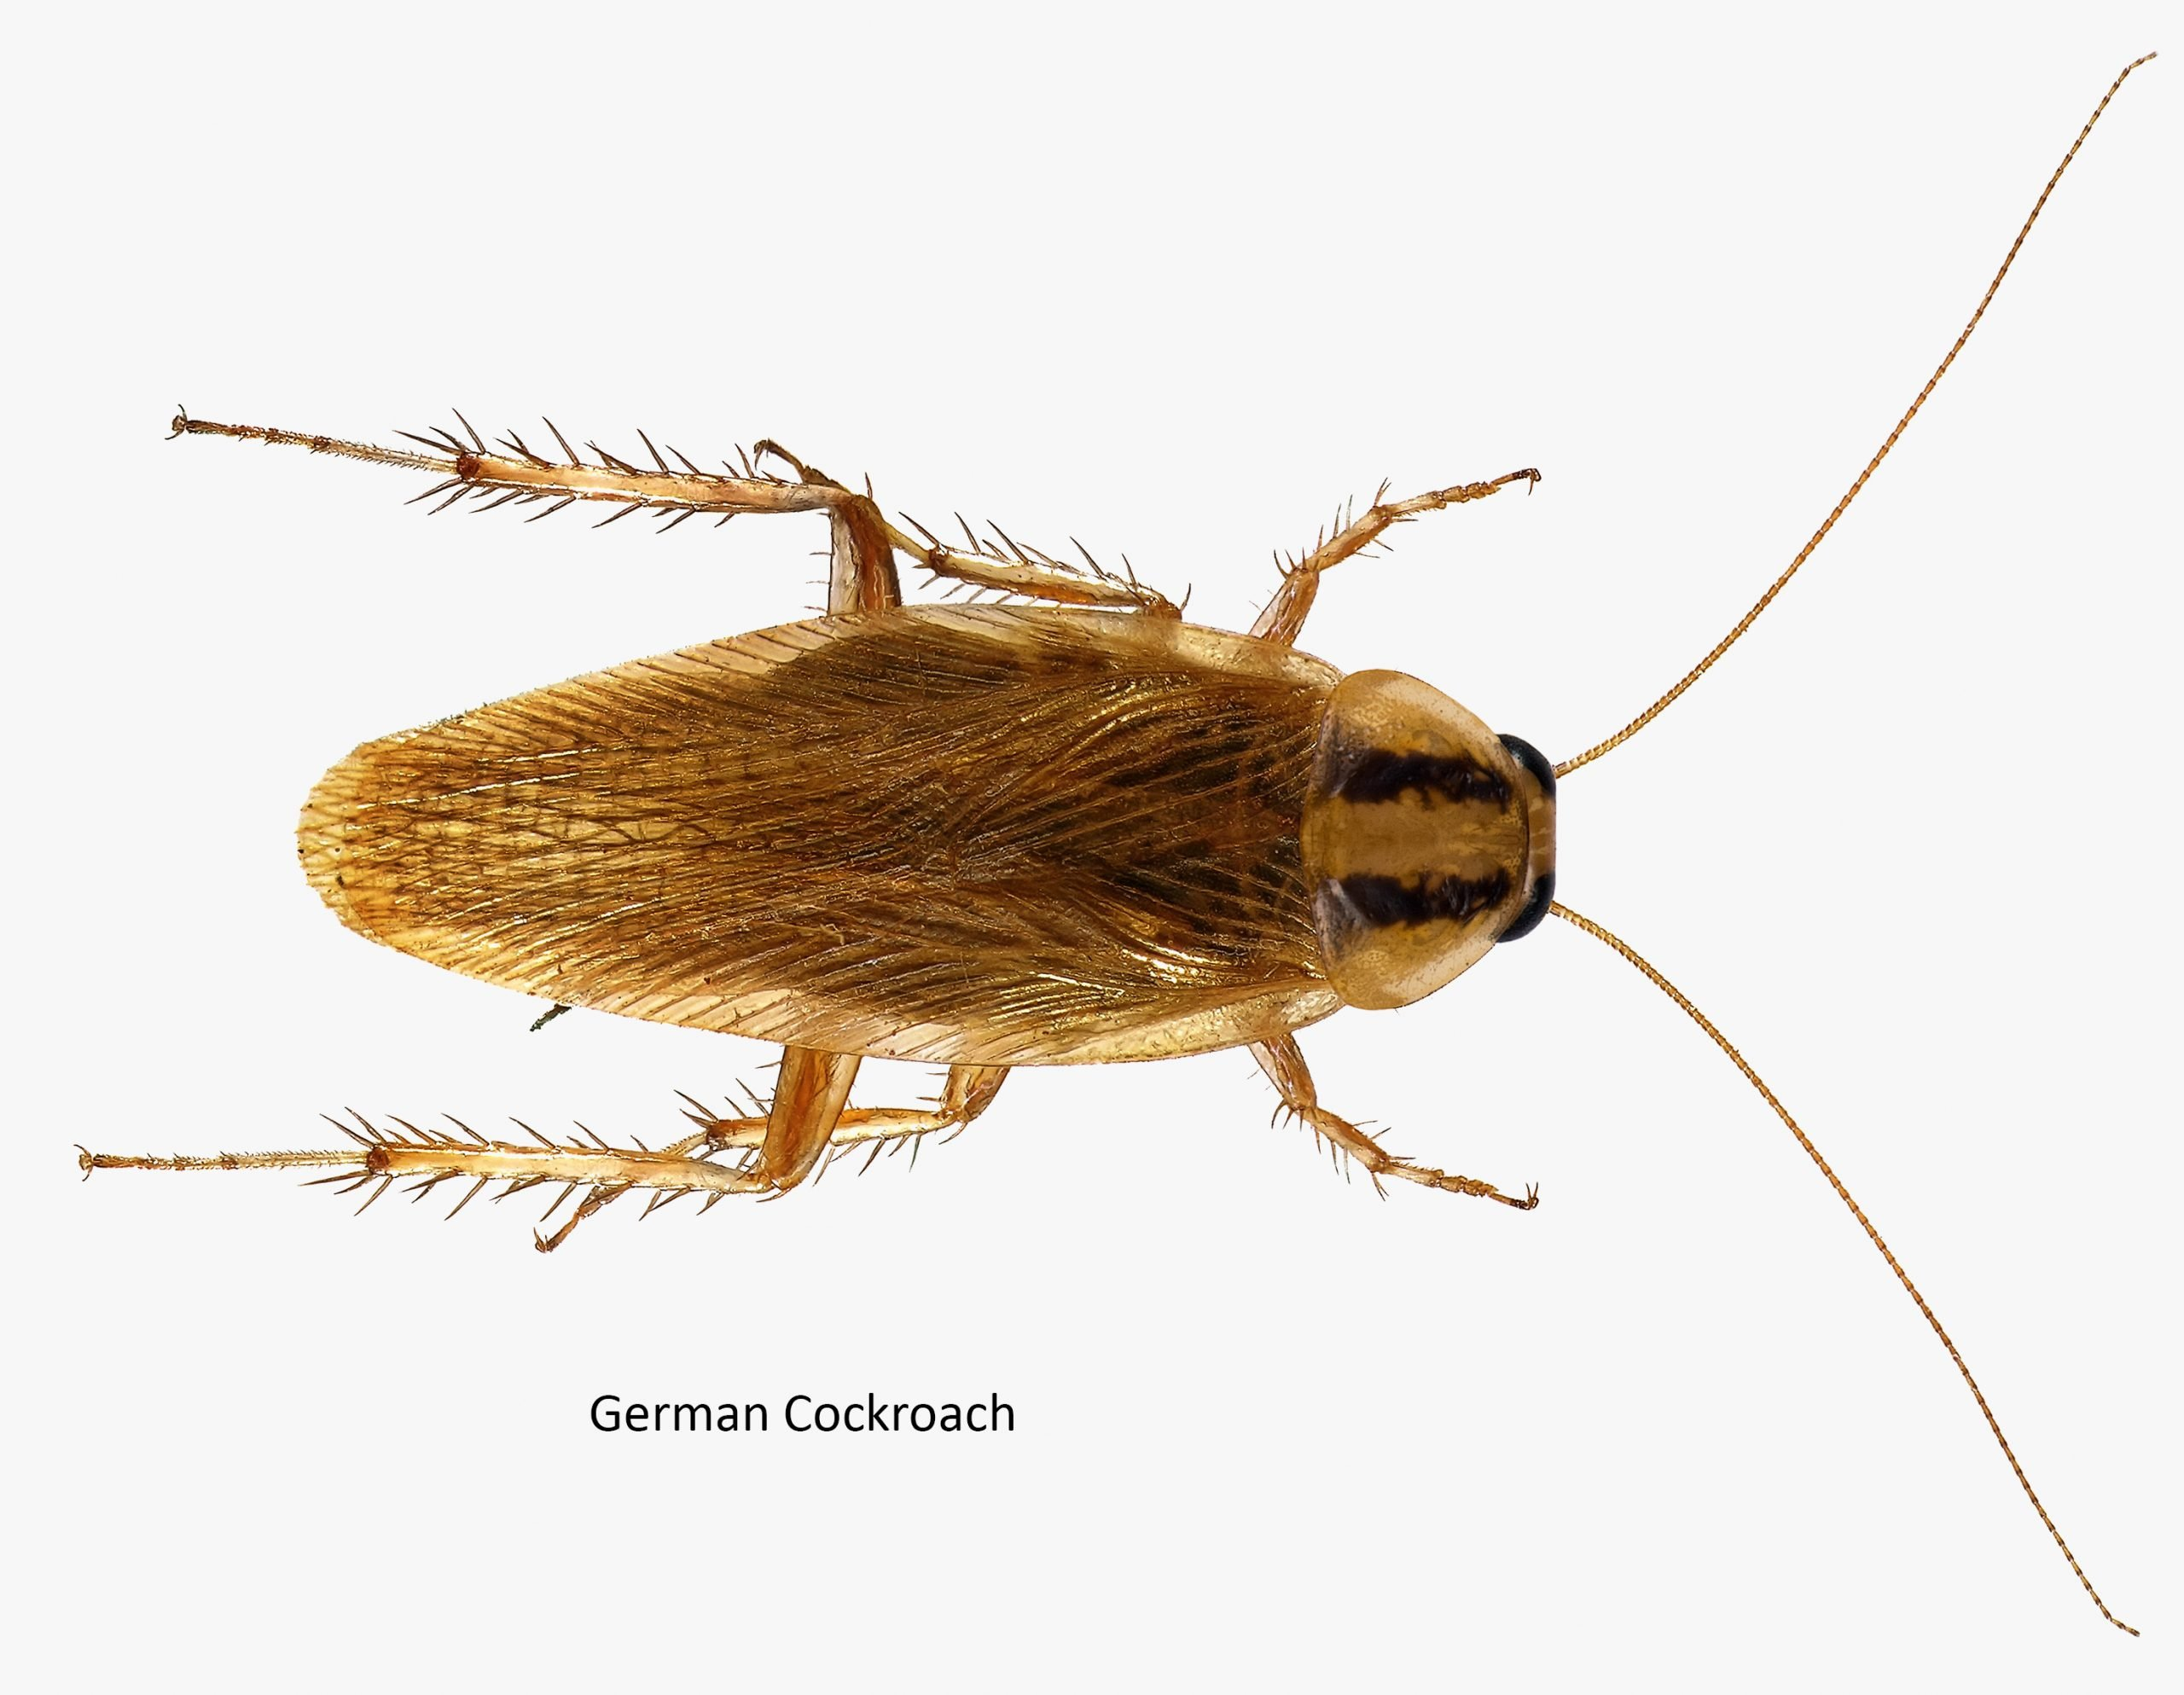 German cockroach (Blattella germanica)